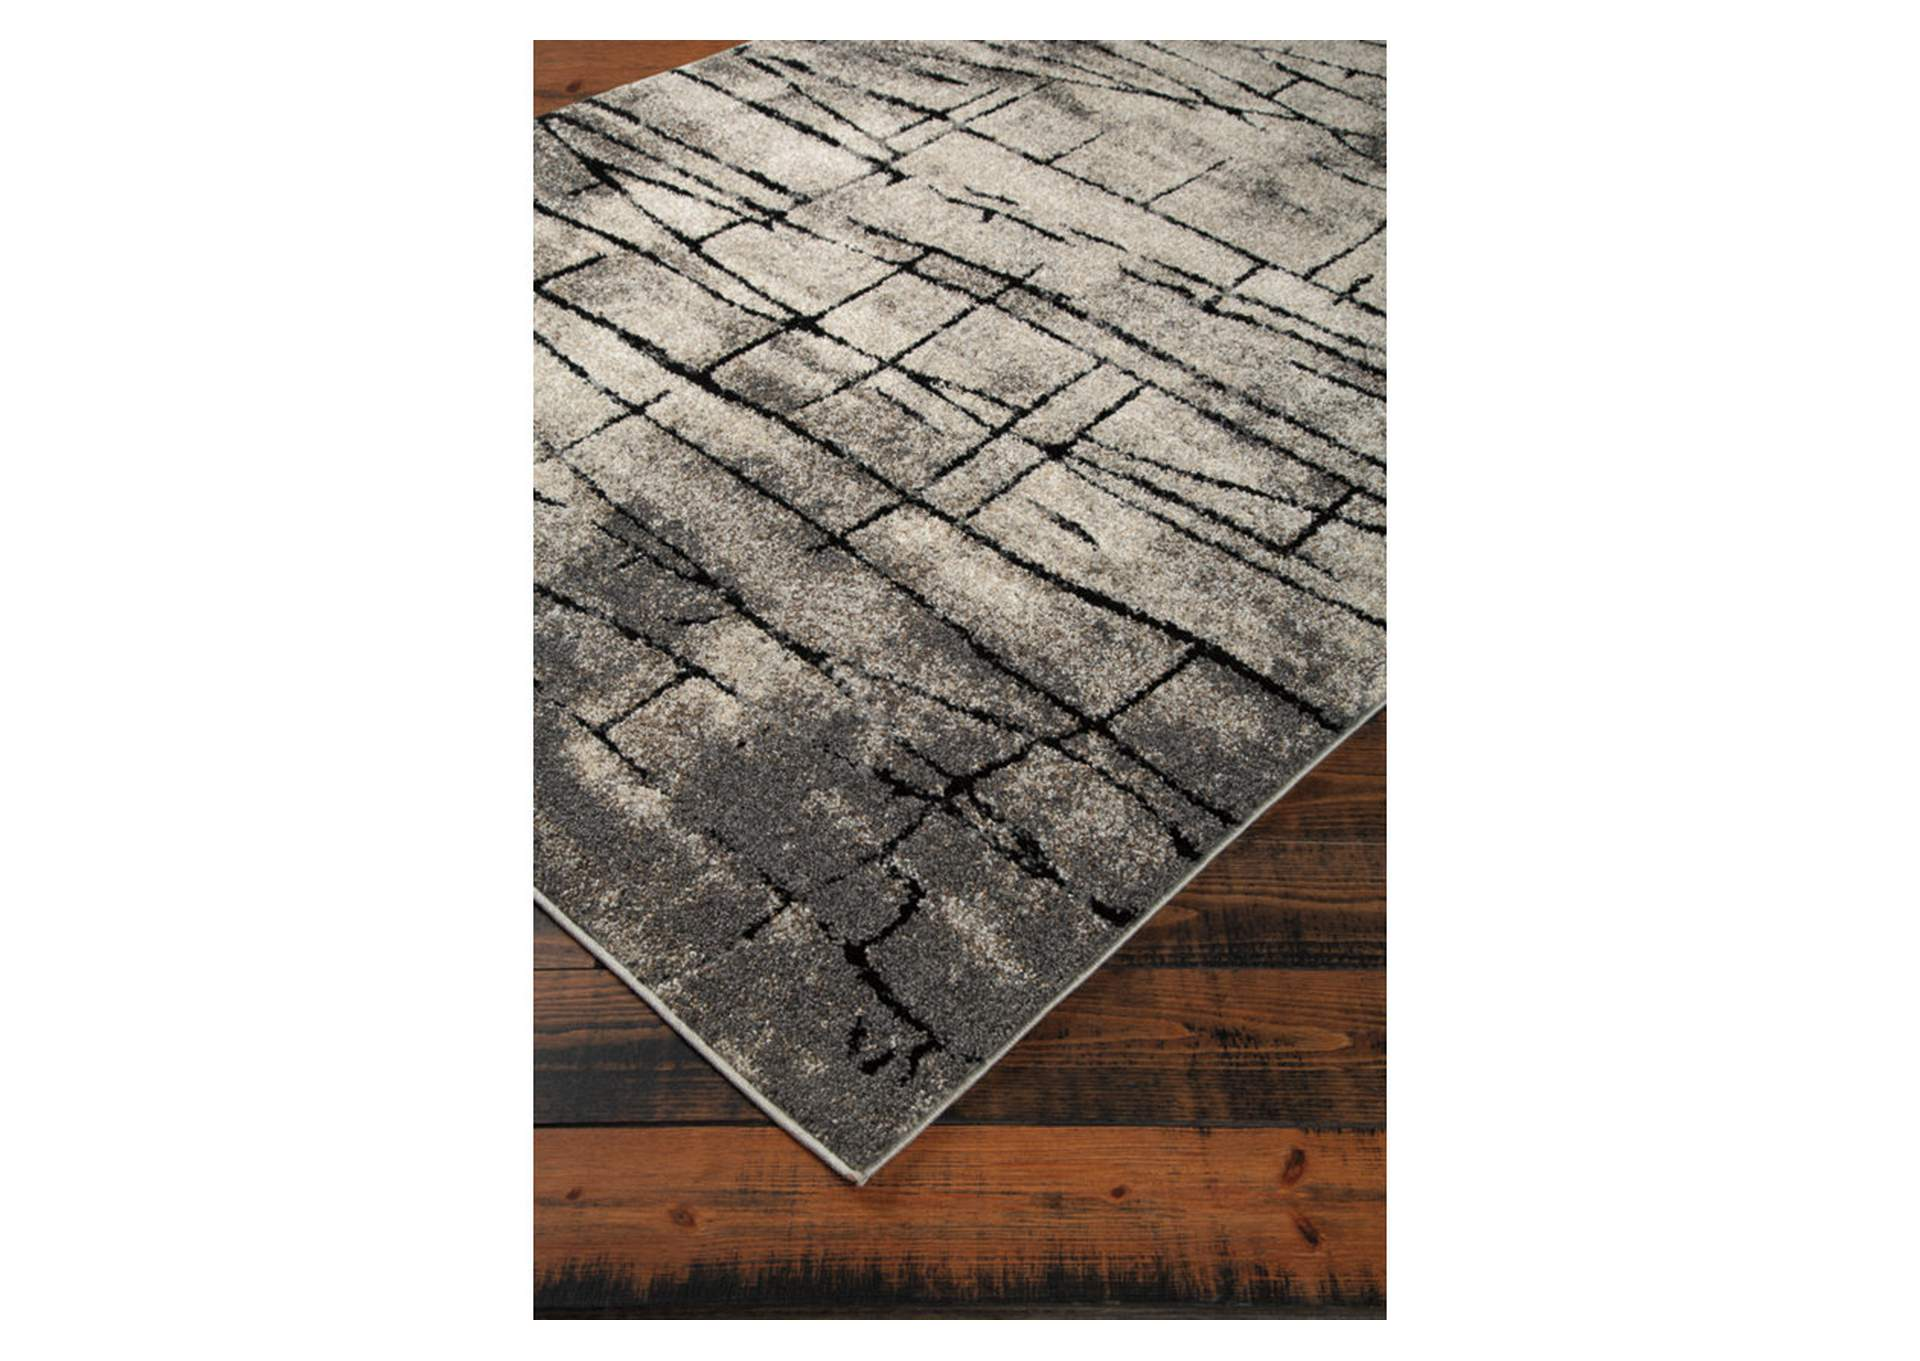 Casten Black/Tan Large Rug,Direct To Consumer Express